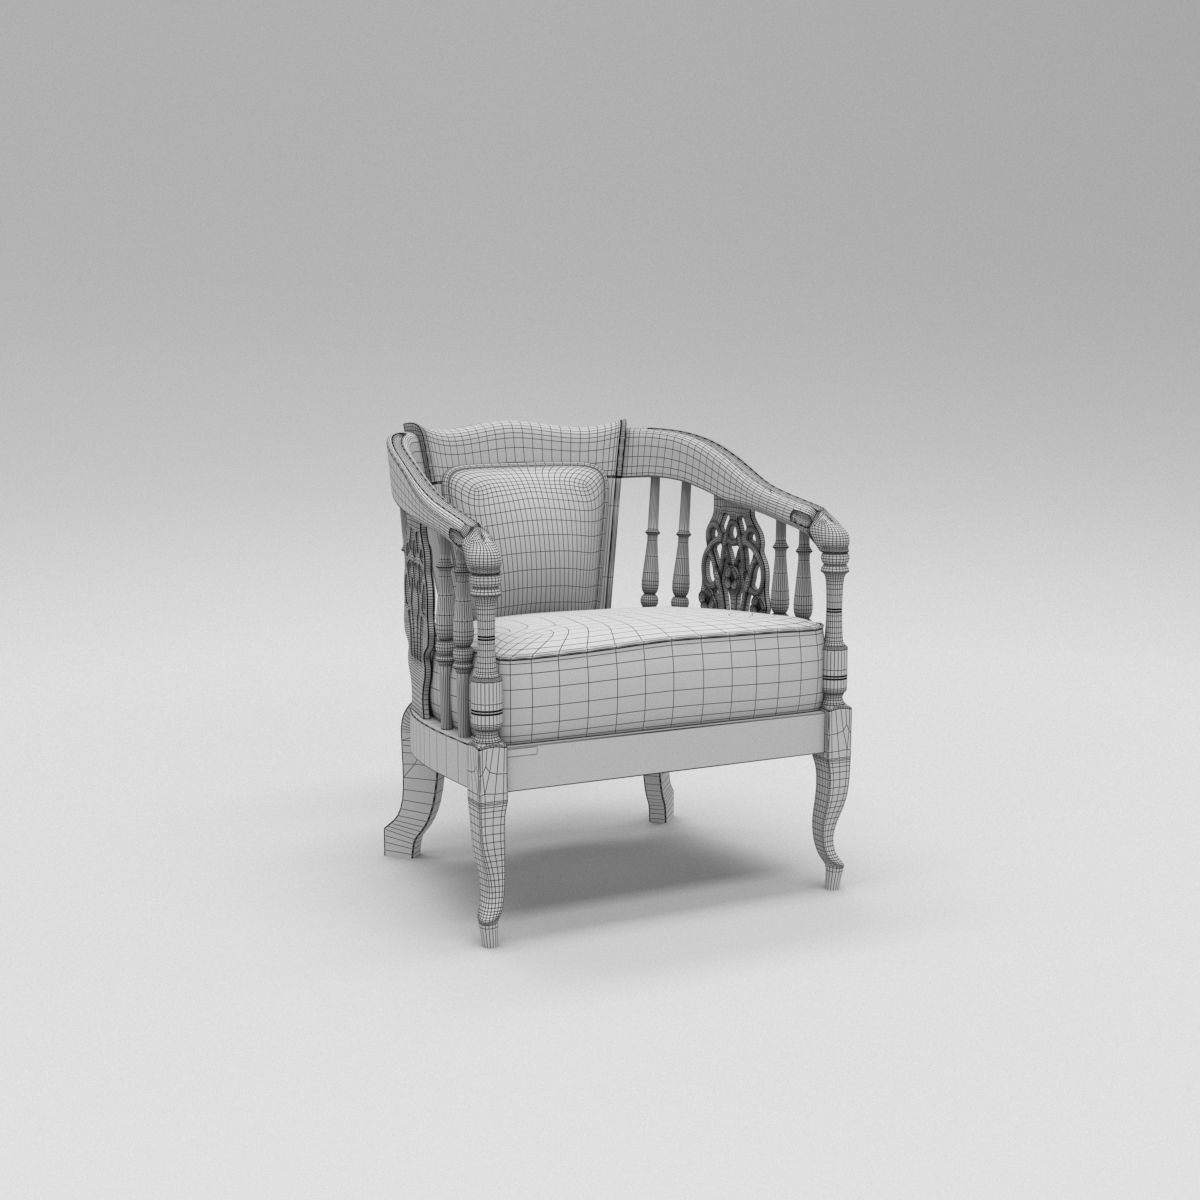 El Marissa Sofa 3D Model | Cgtrader Intended For Marissa Sofa Chairs (Image 5 of 25)